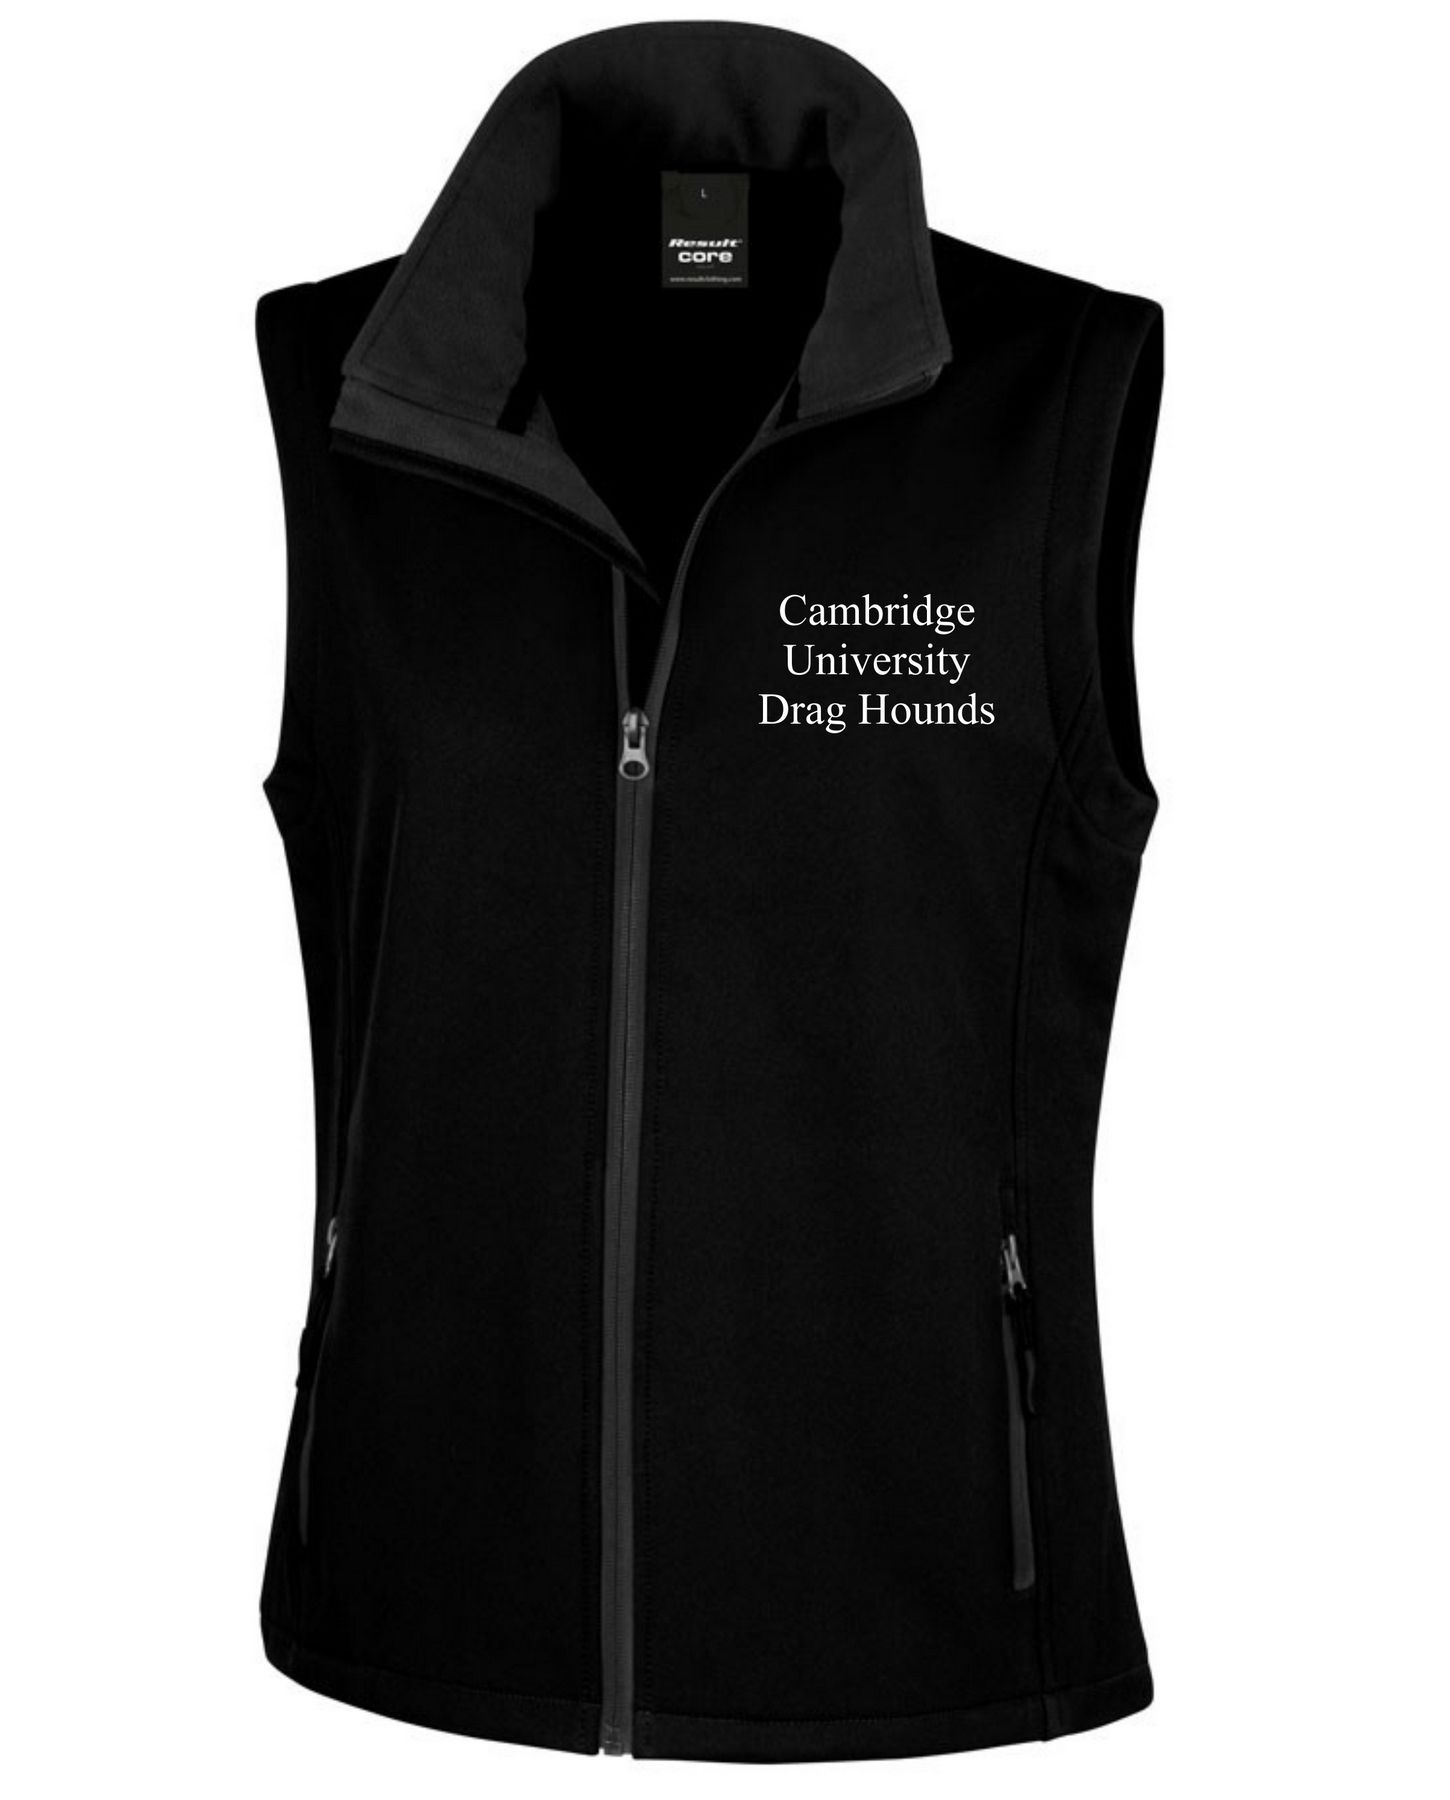 CUDH – Women's Softshell Bodywarmer